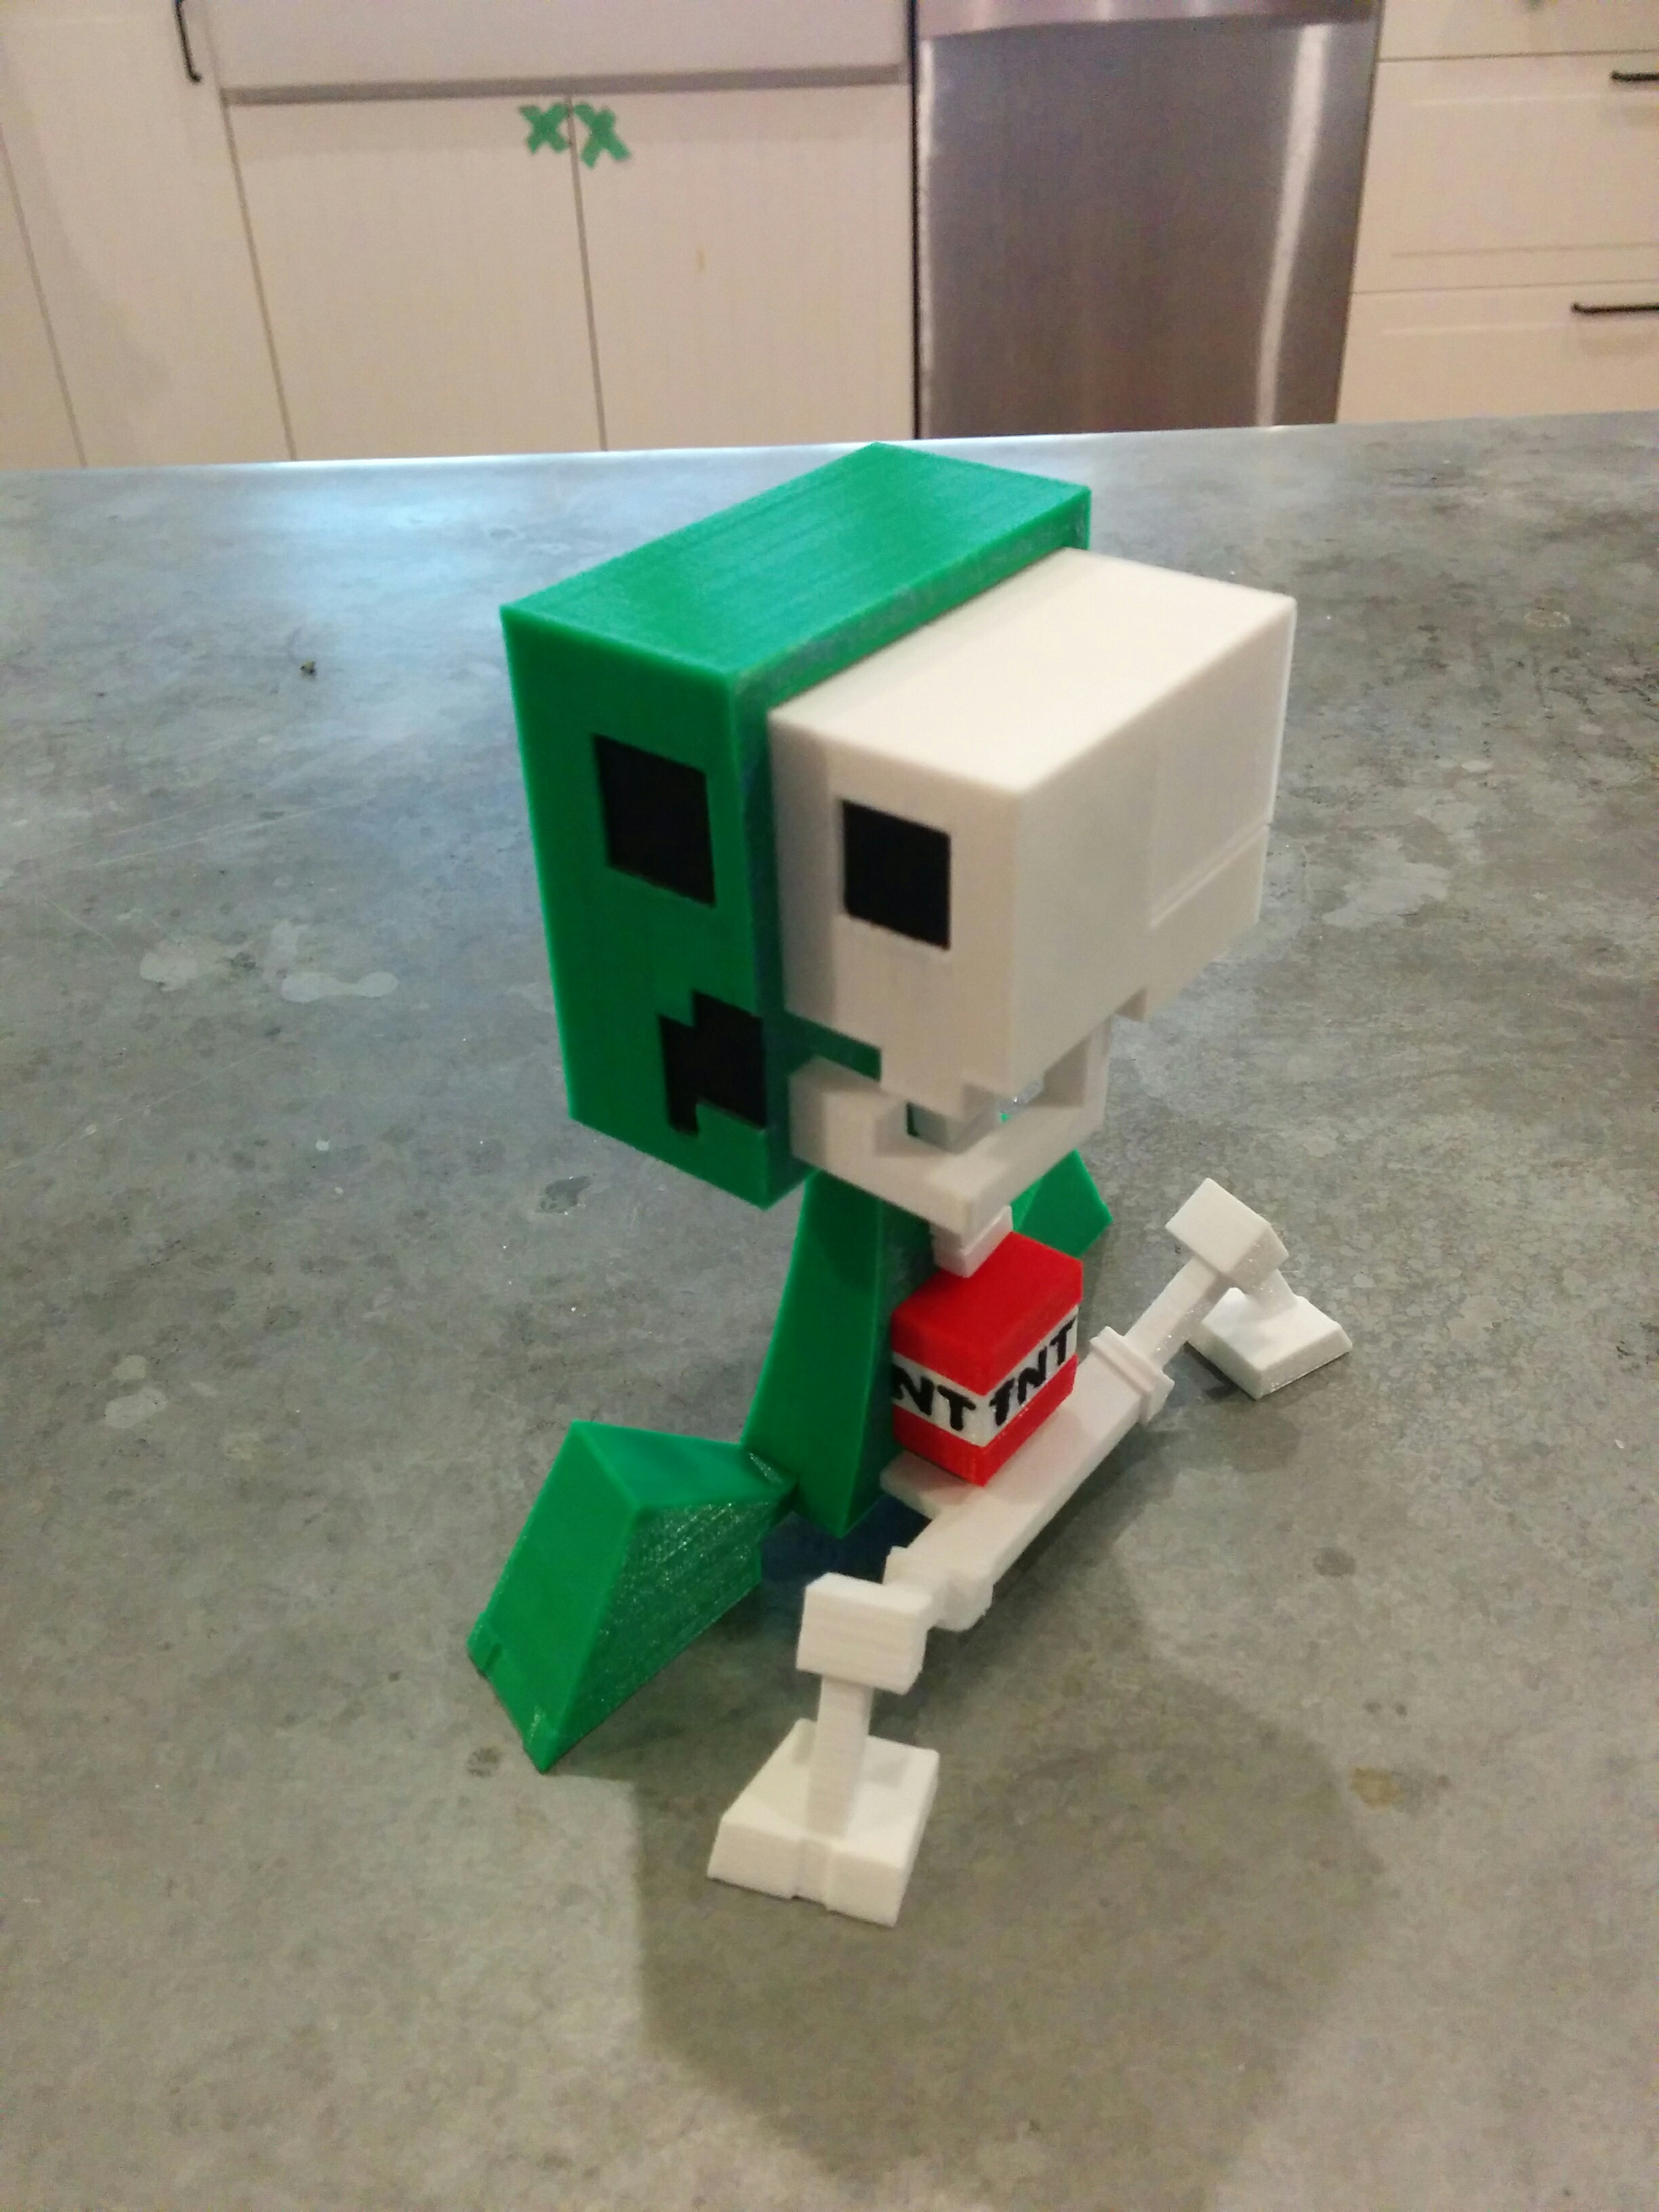 Download Creeper Anatomy From Minecraft Von Kirby Downey - Minecraft creeper spiele